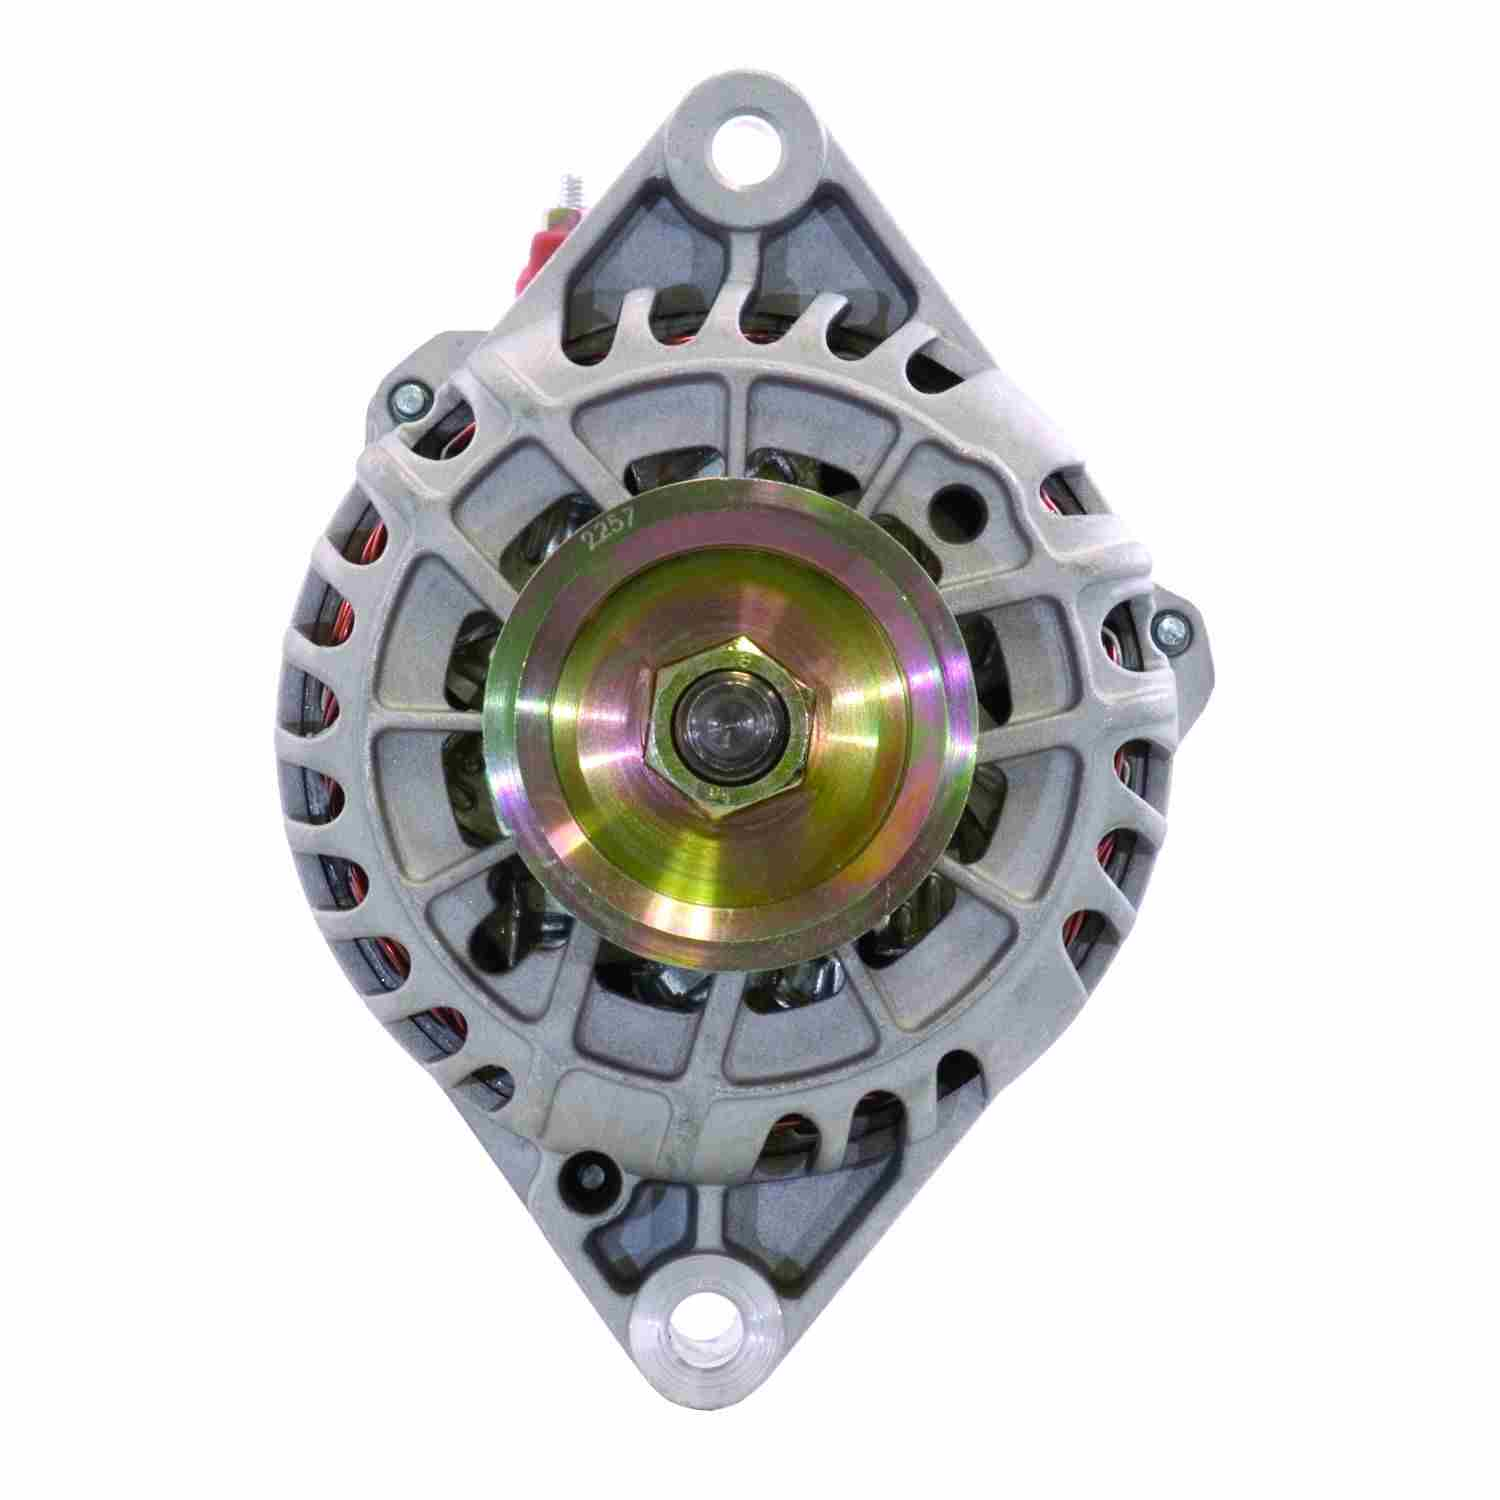 ACDELCO GOLD/PROFESSIONAL - Alternator - DCC 335-1143